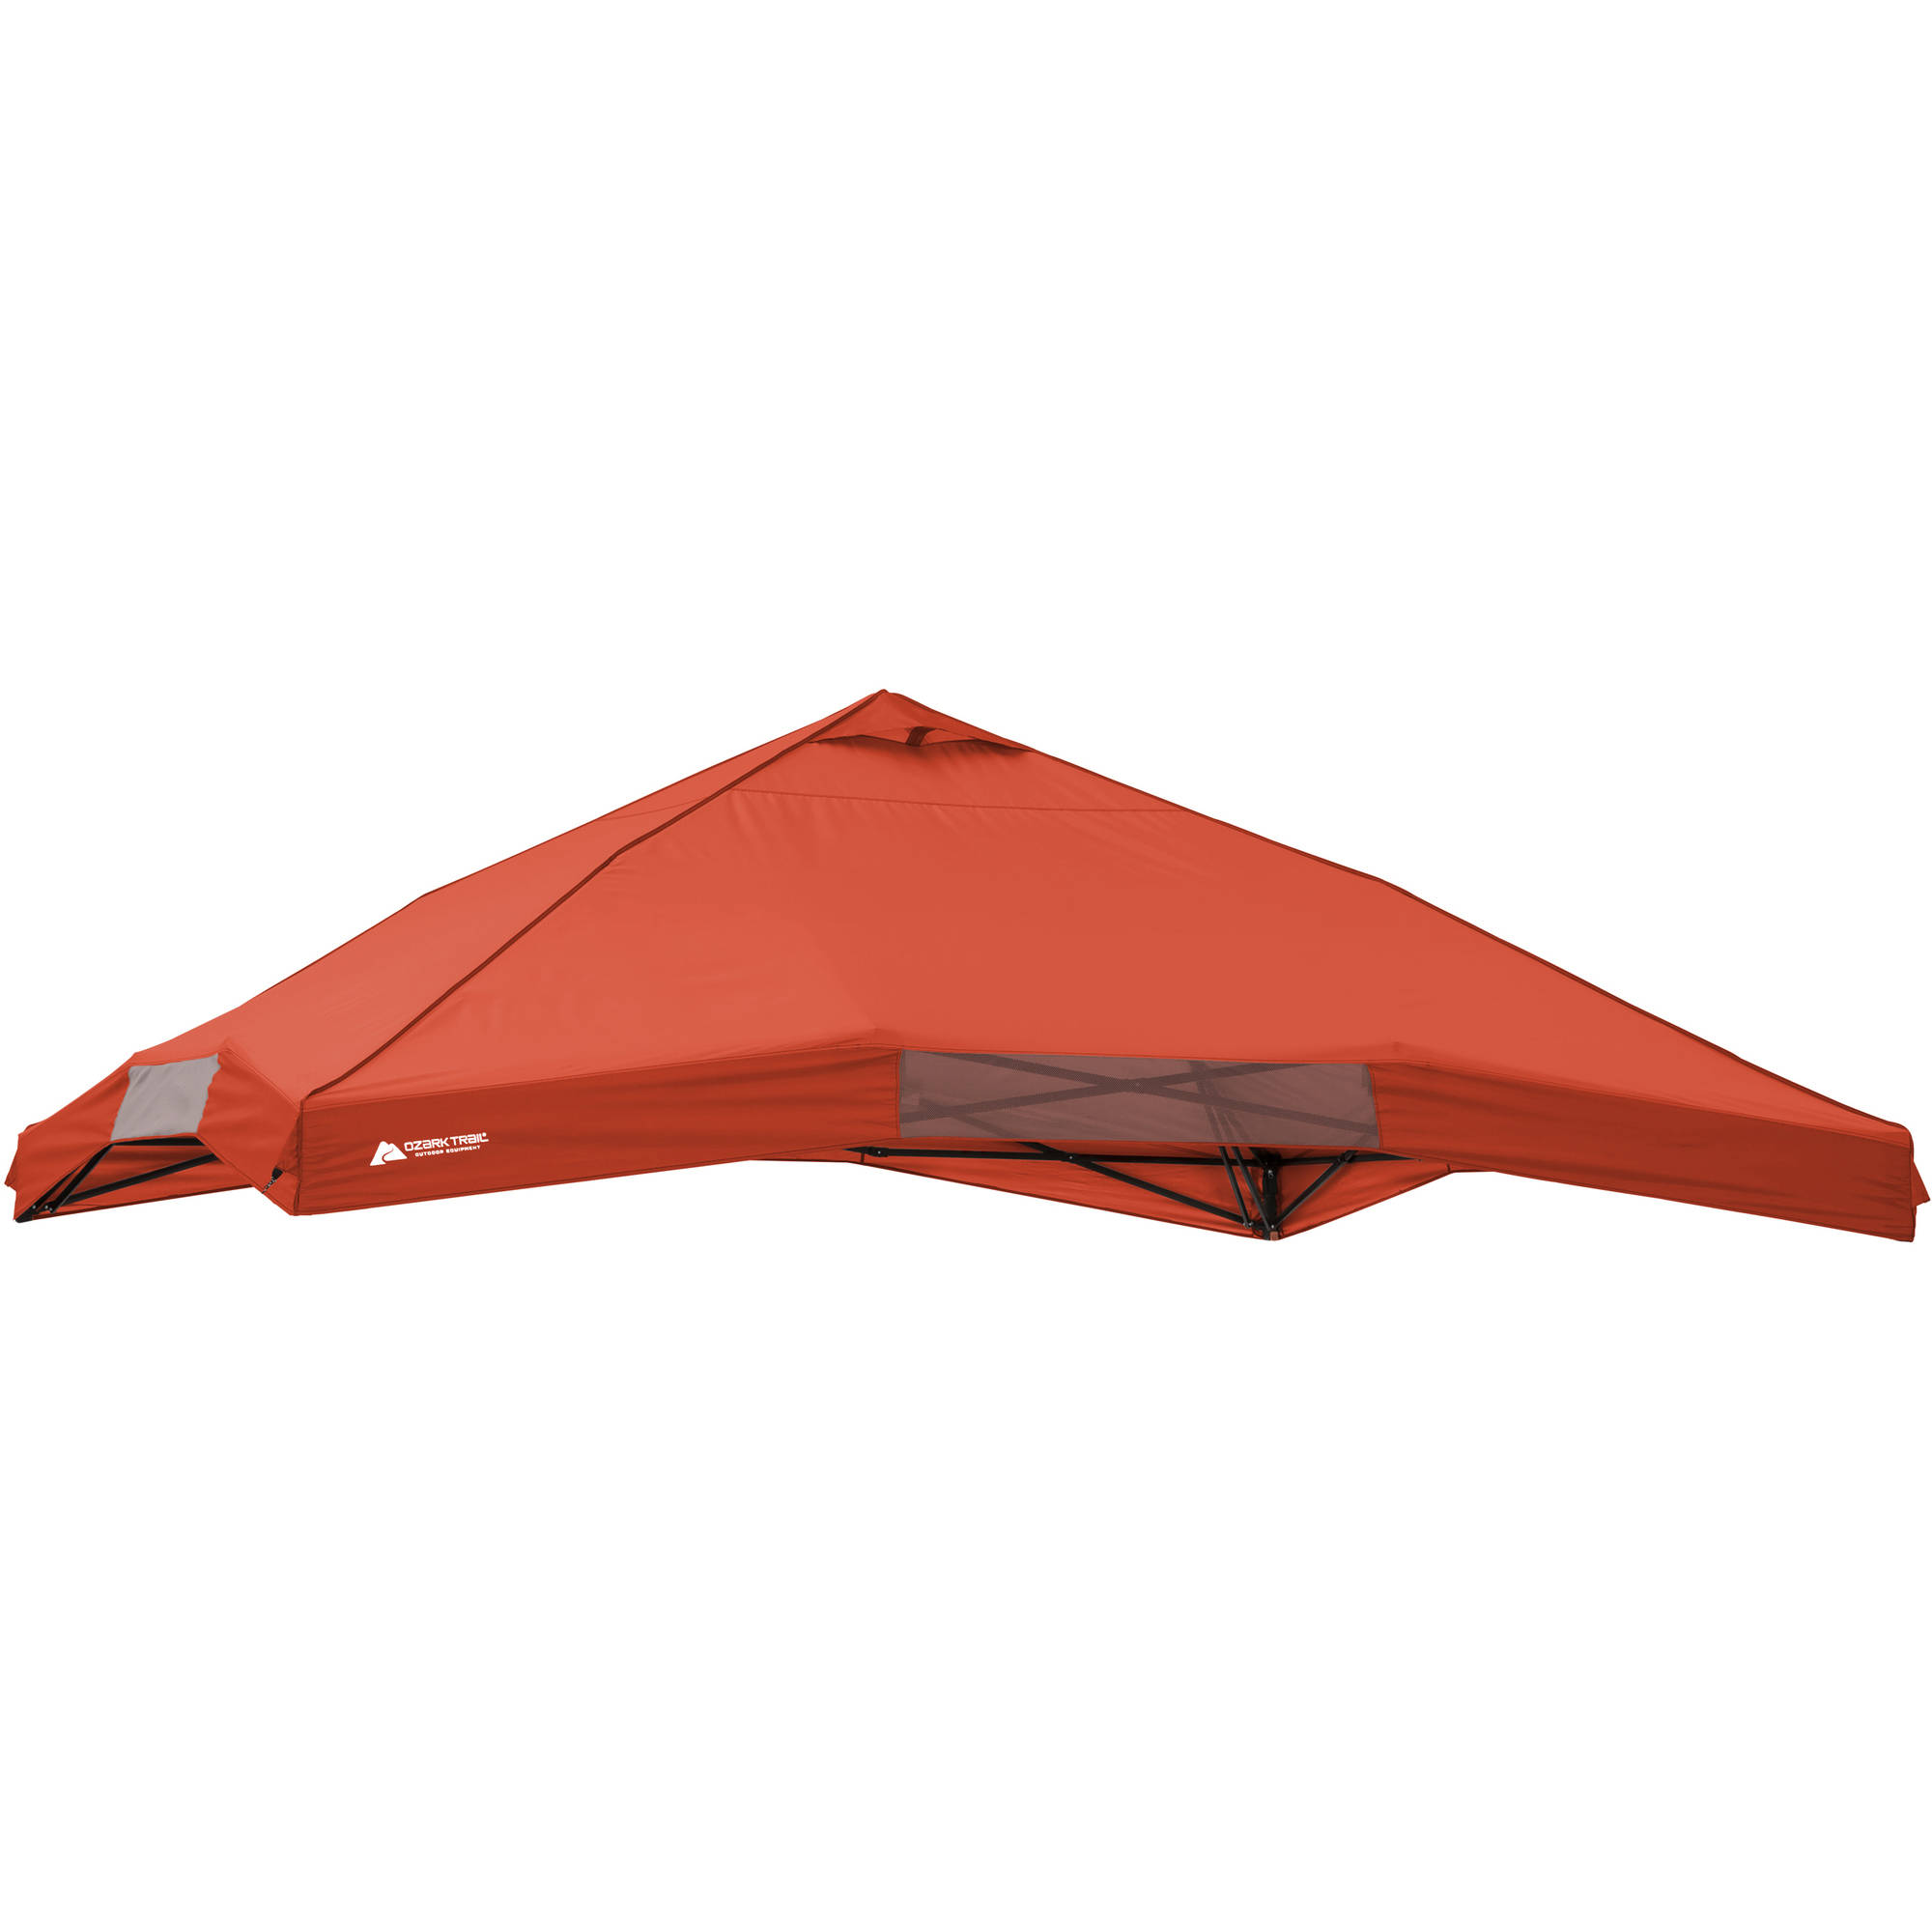 Ozark Trail Instant 12' x 12' Canopy Top, Red by